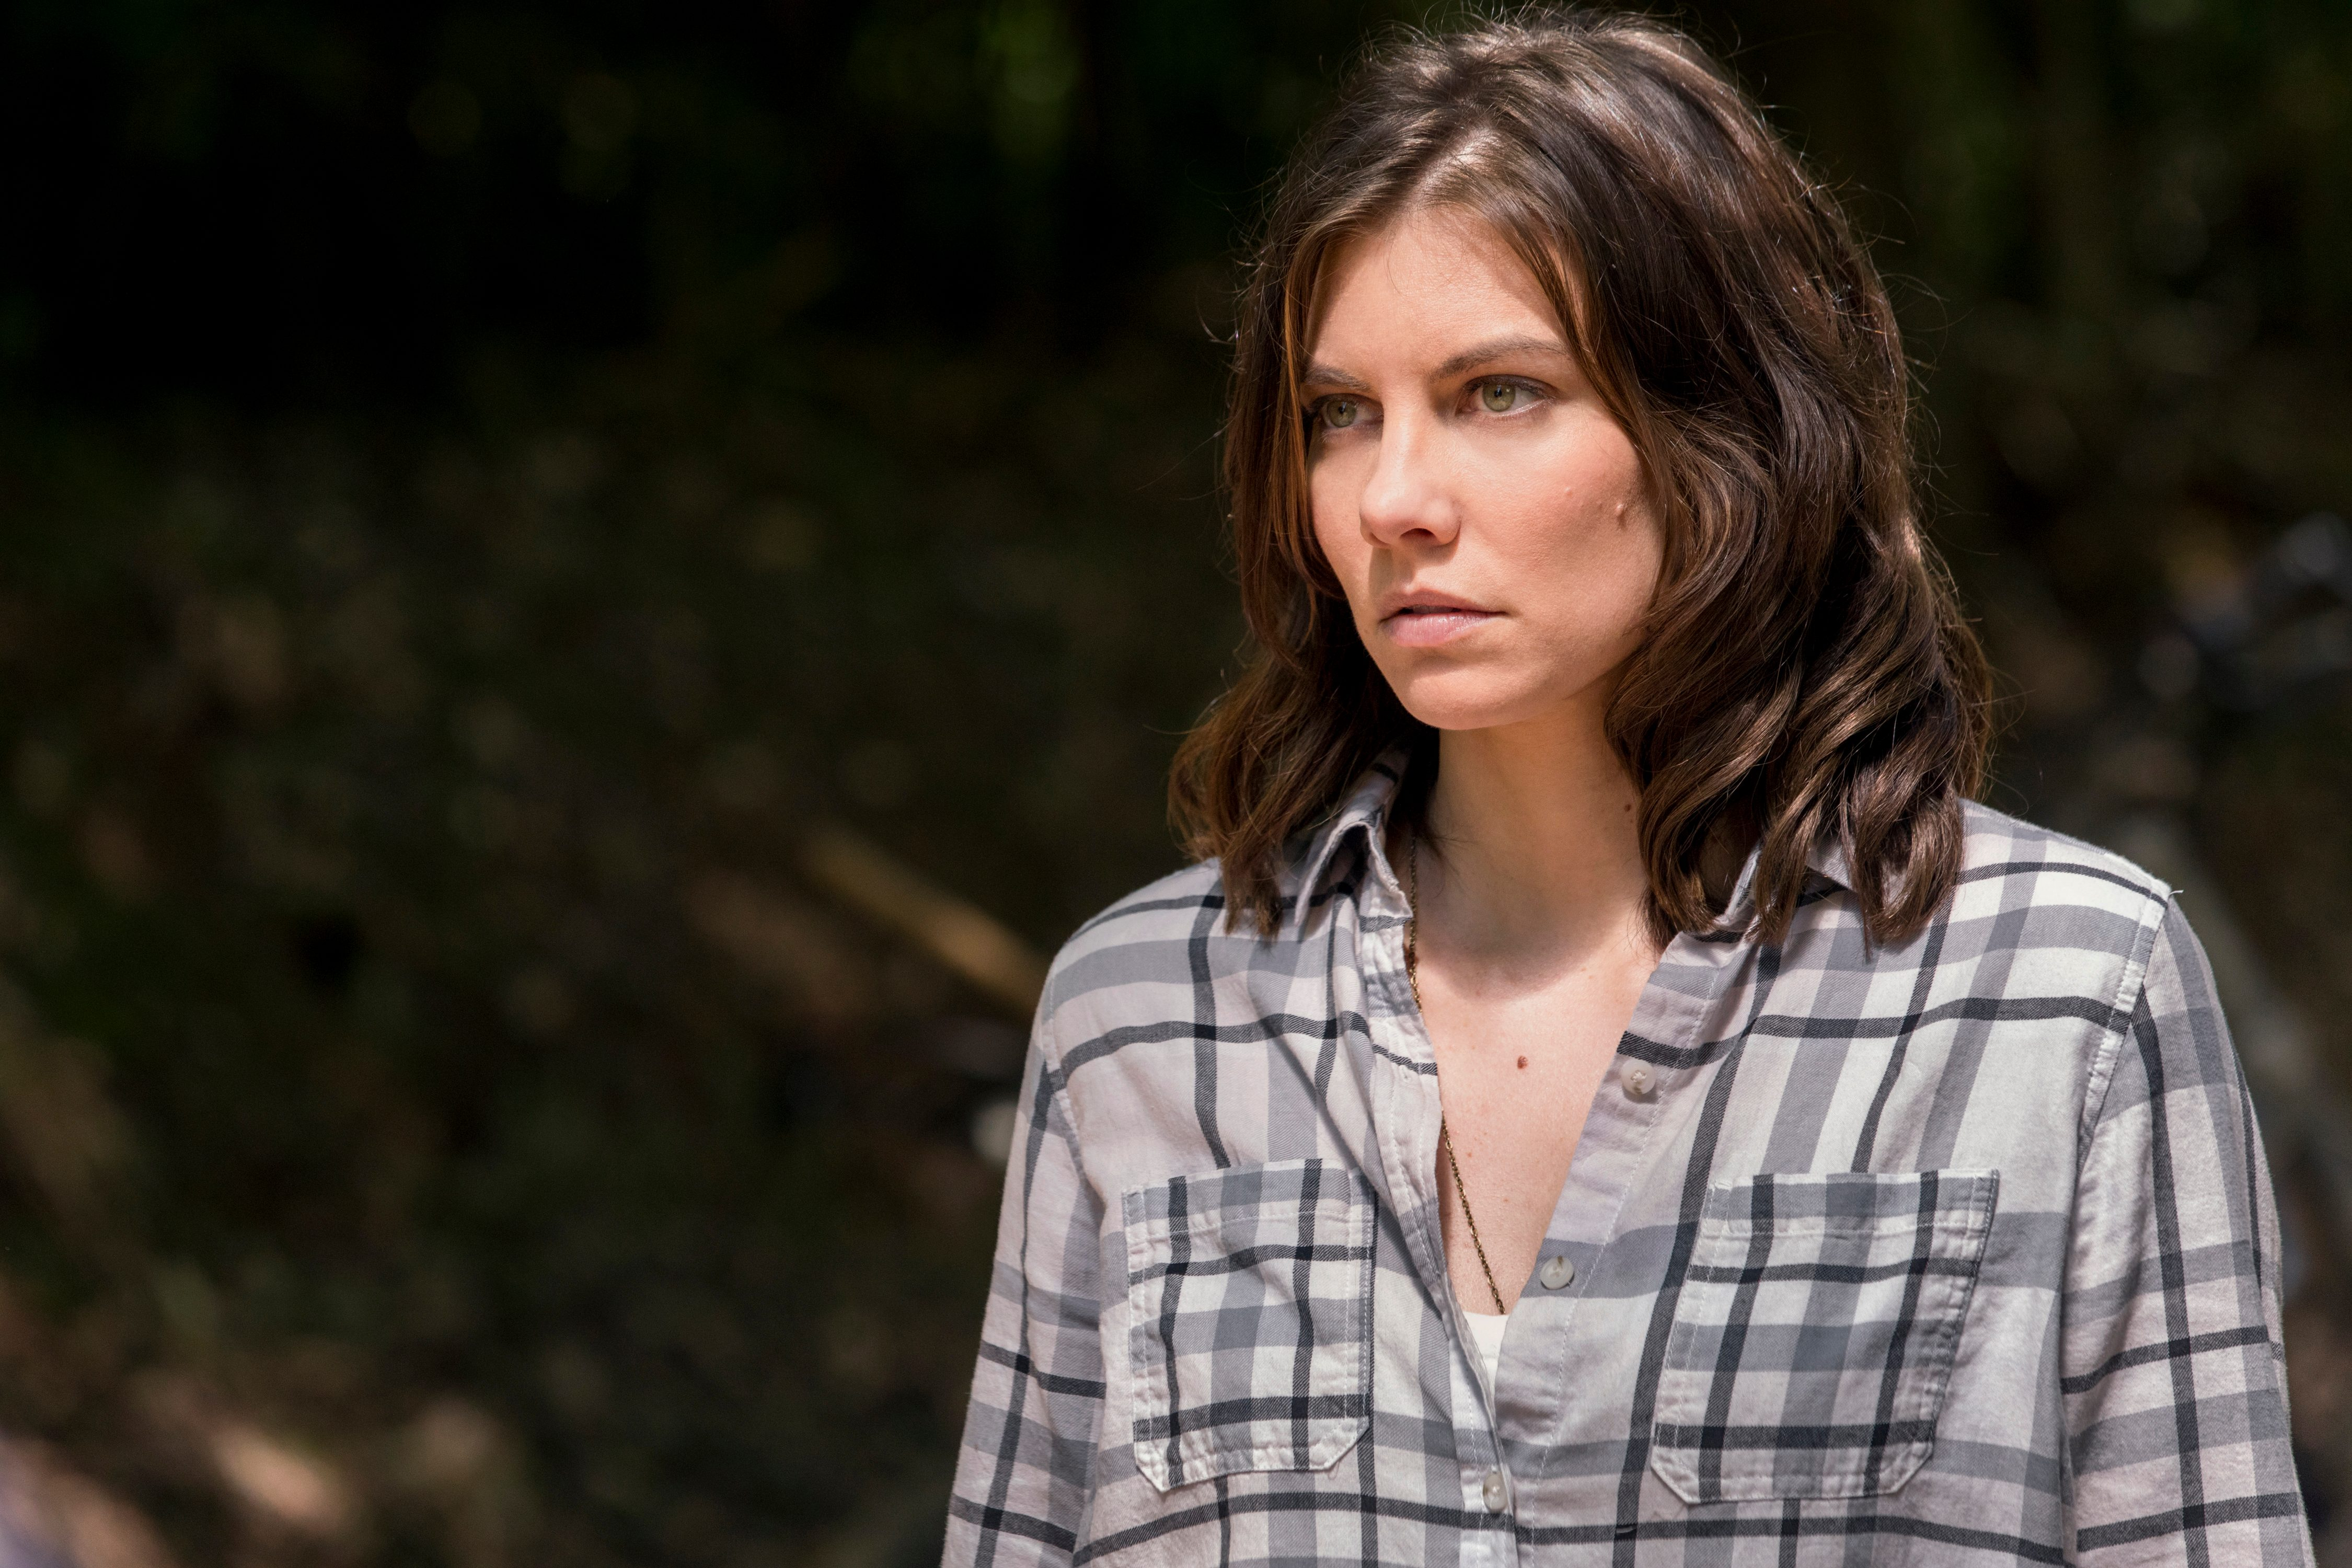 """The Walking Dead's Lauren Cohan hints there are stories """"to explore"""" for Maggie in spin-offs thumbnail"""